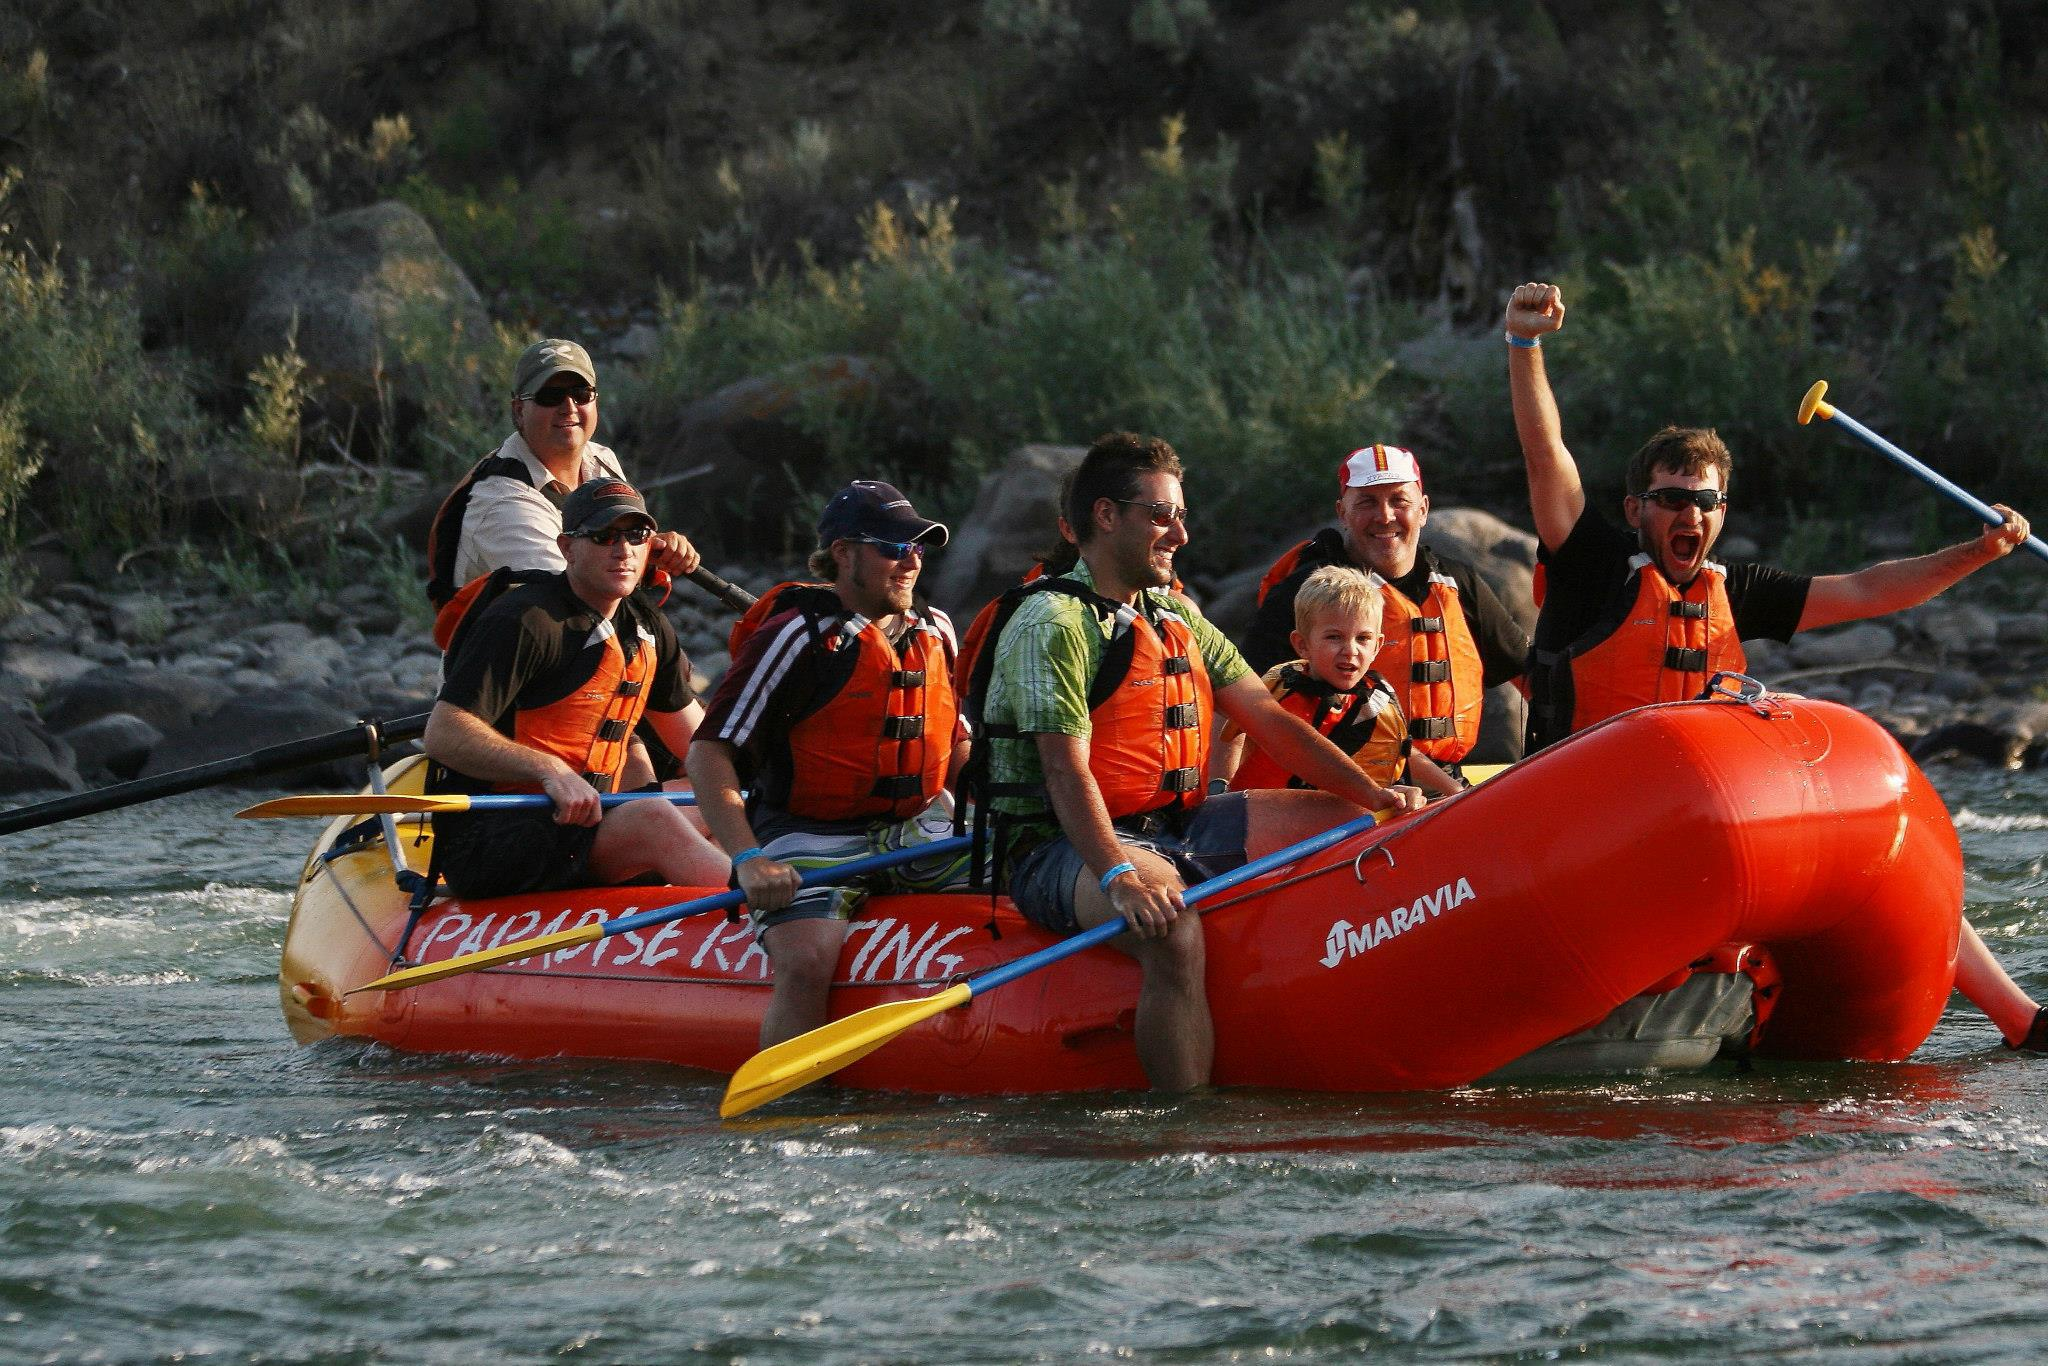 I rafted in Montana